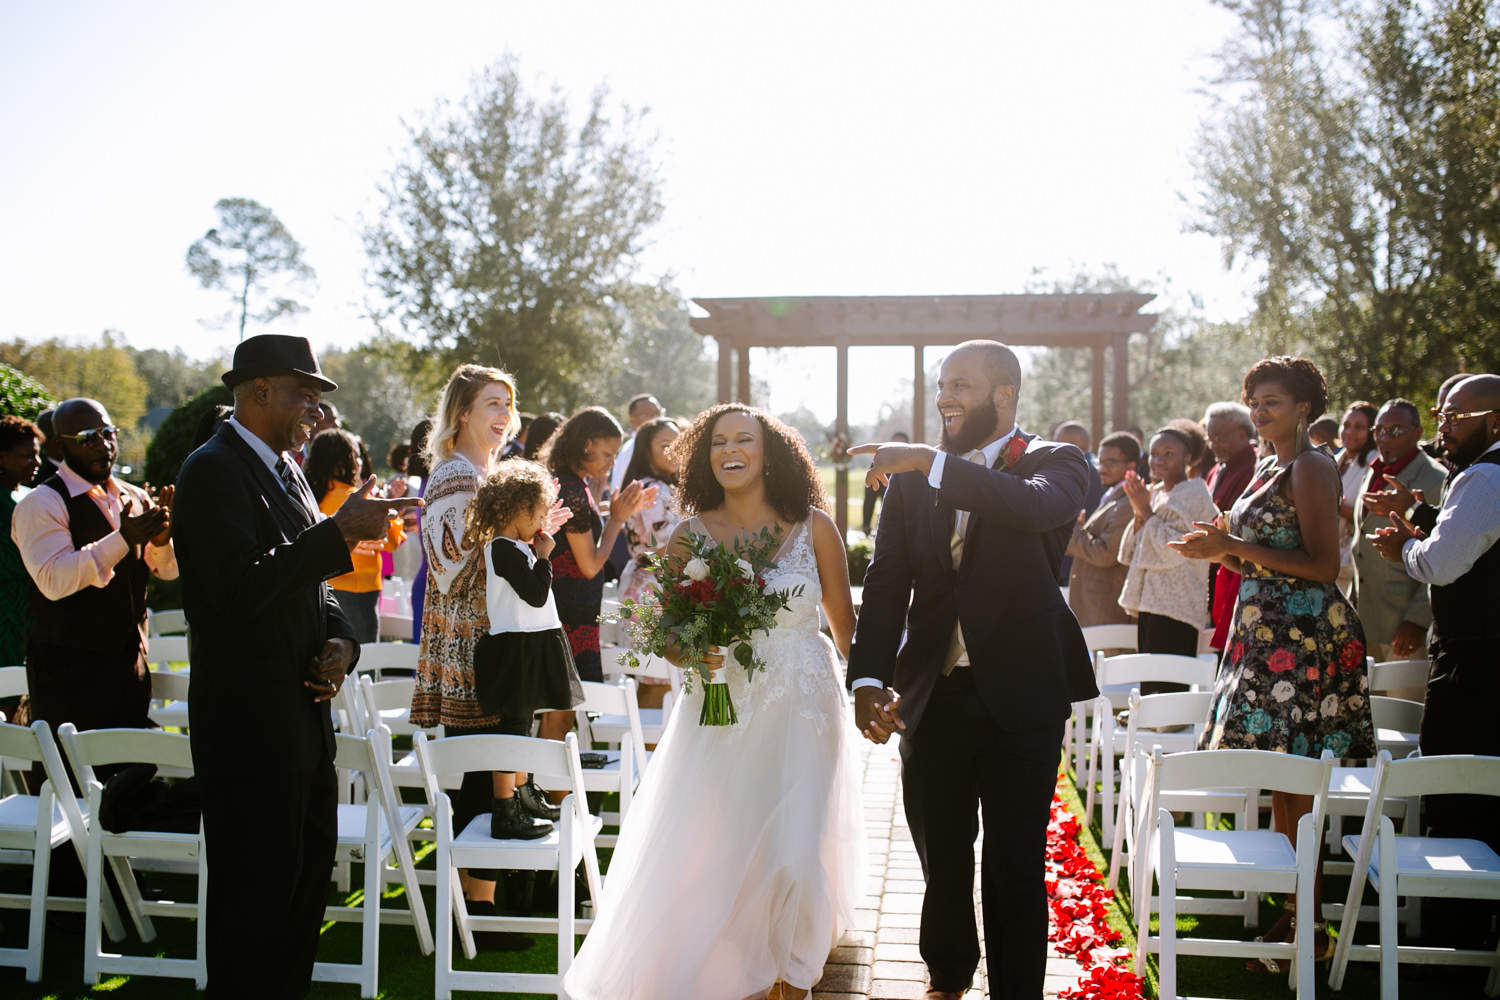 Outdoor wedding ceremony in Florida